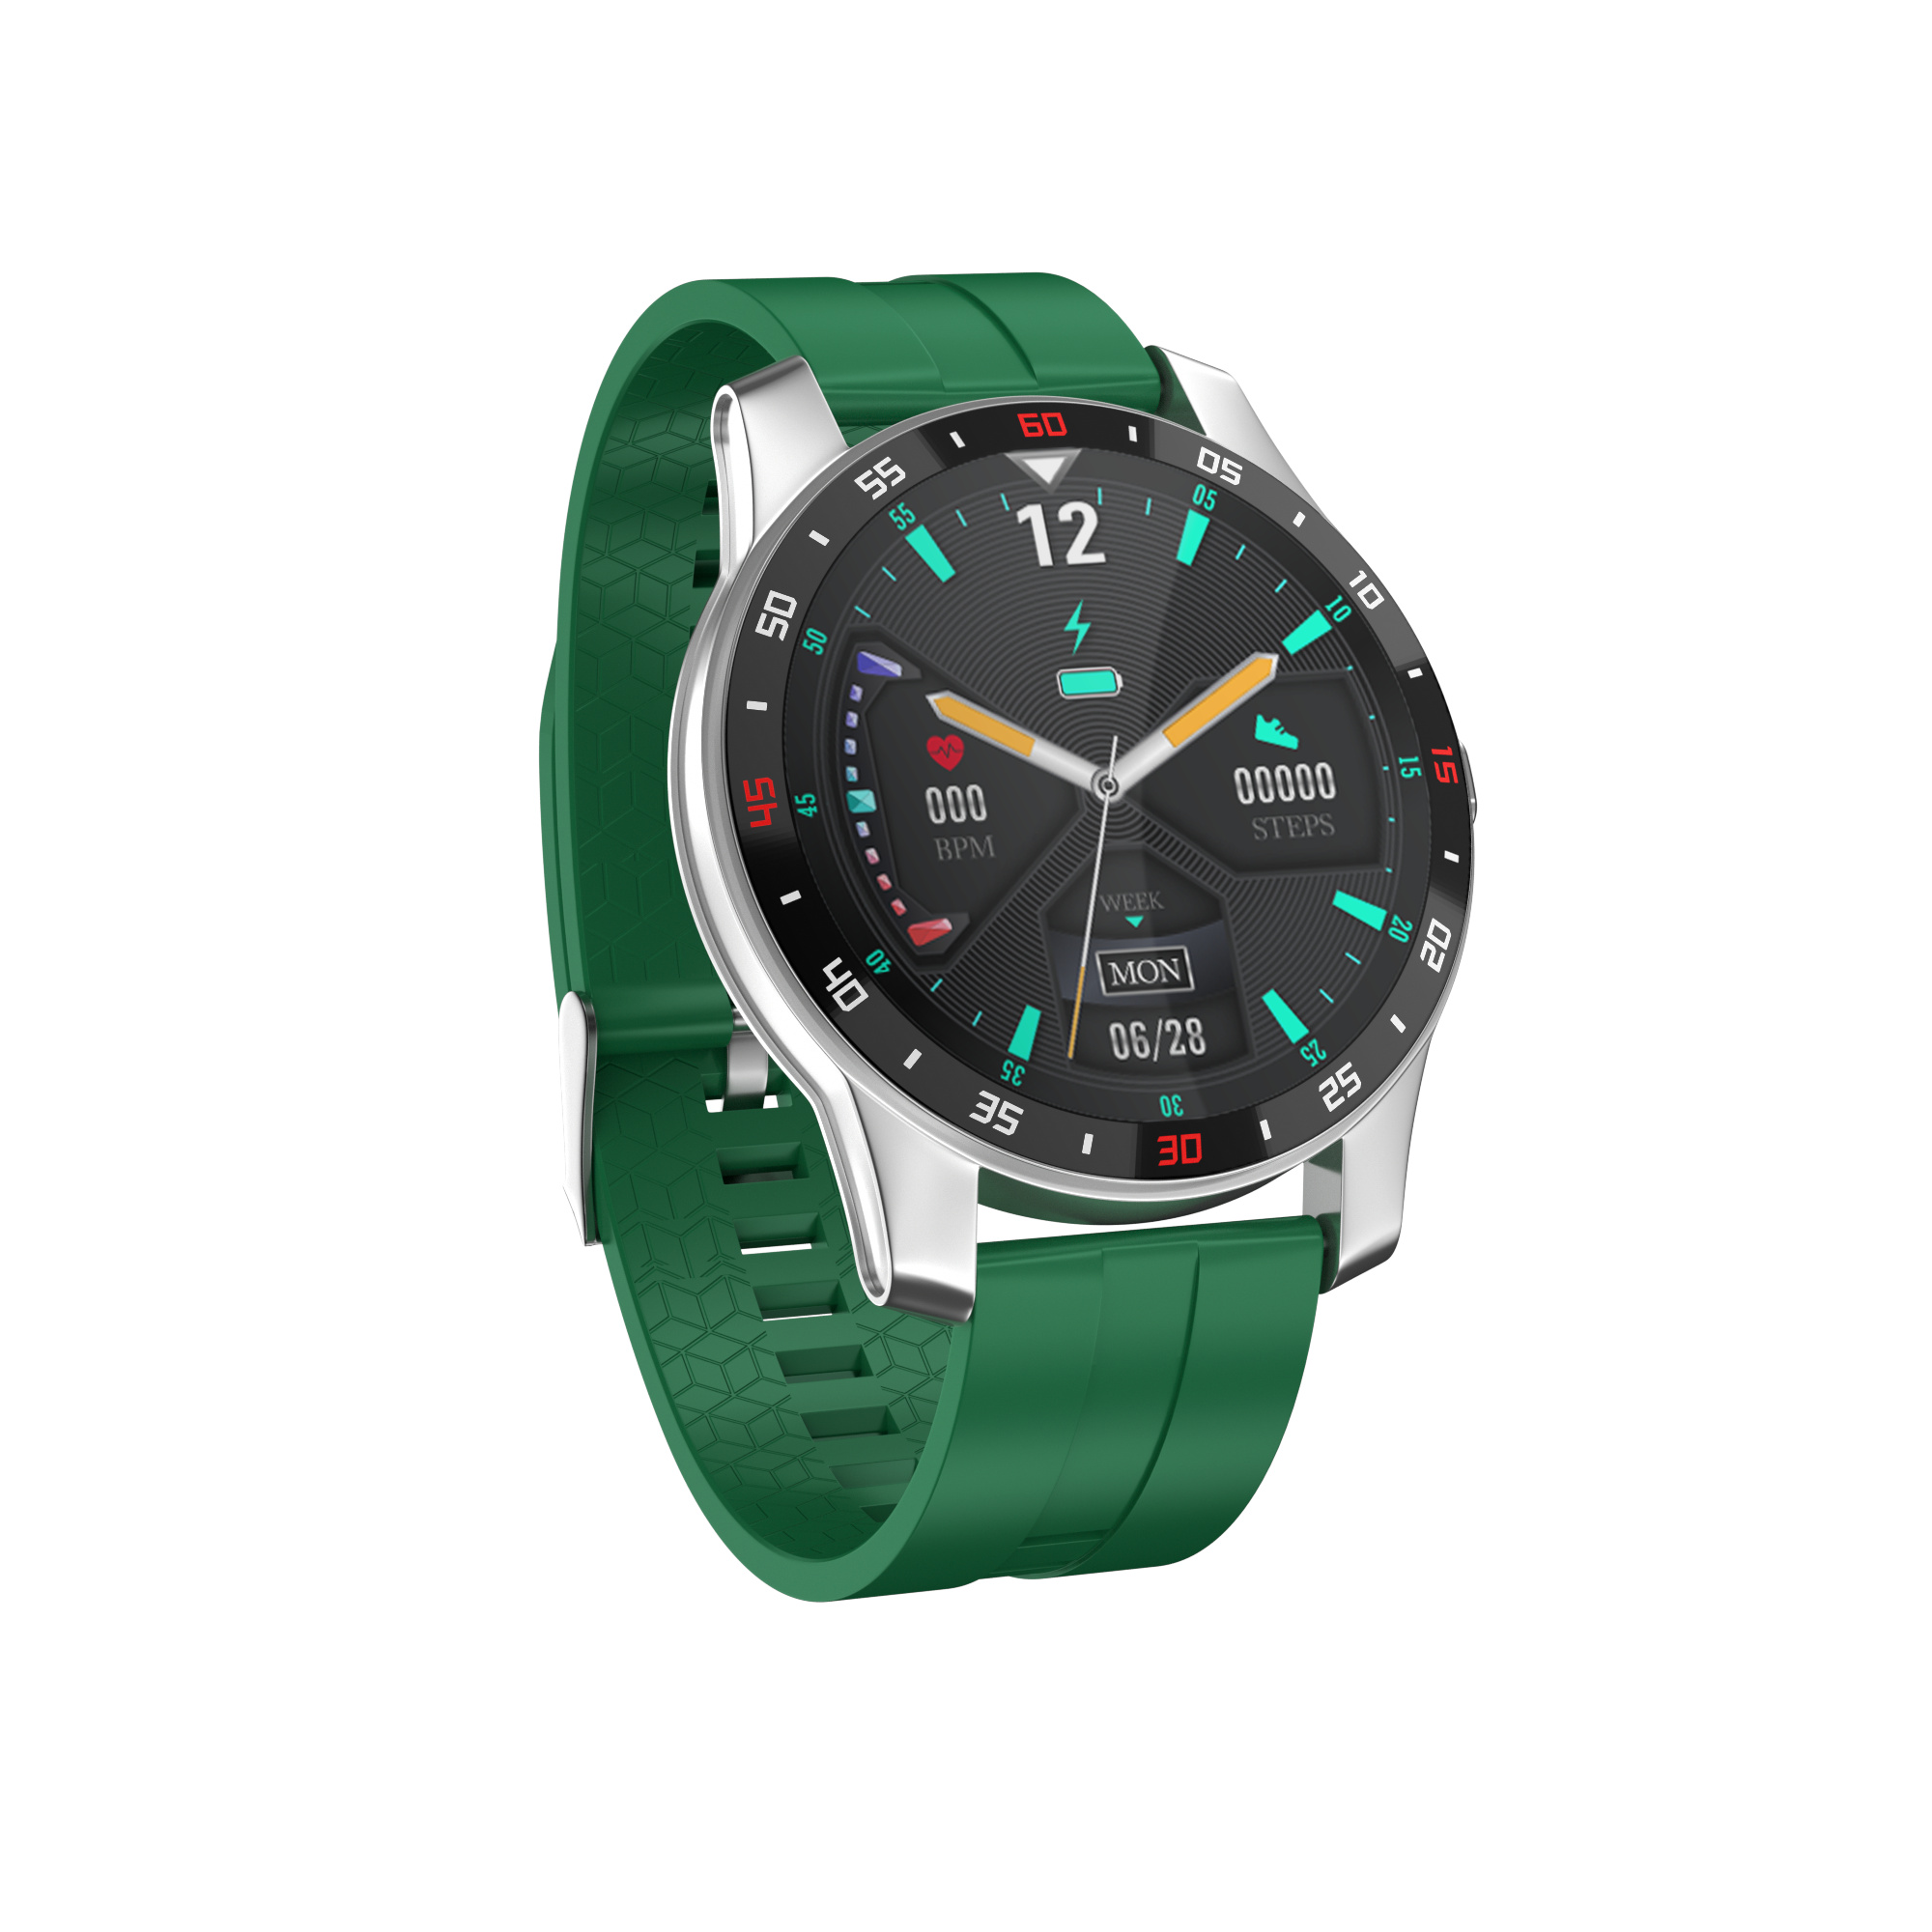 F12 Pro Bluetooth 5.0 Sports Smartwatches Color Display 280mah 24h Real Time Heart Tate Monitoring Smartwatch green